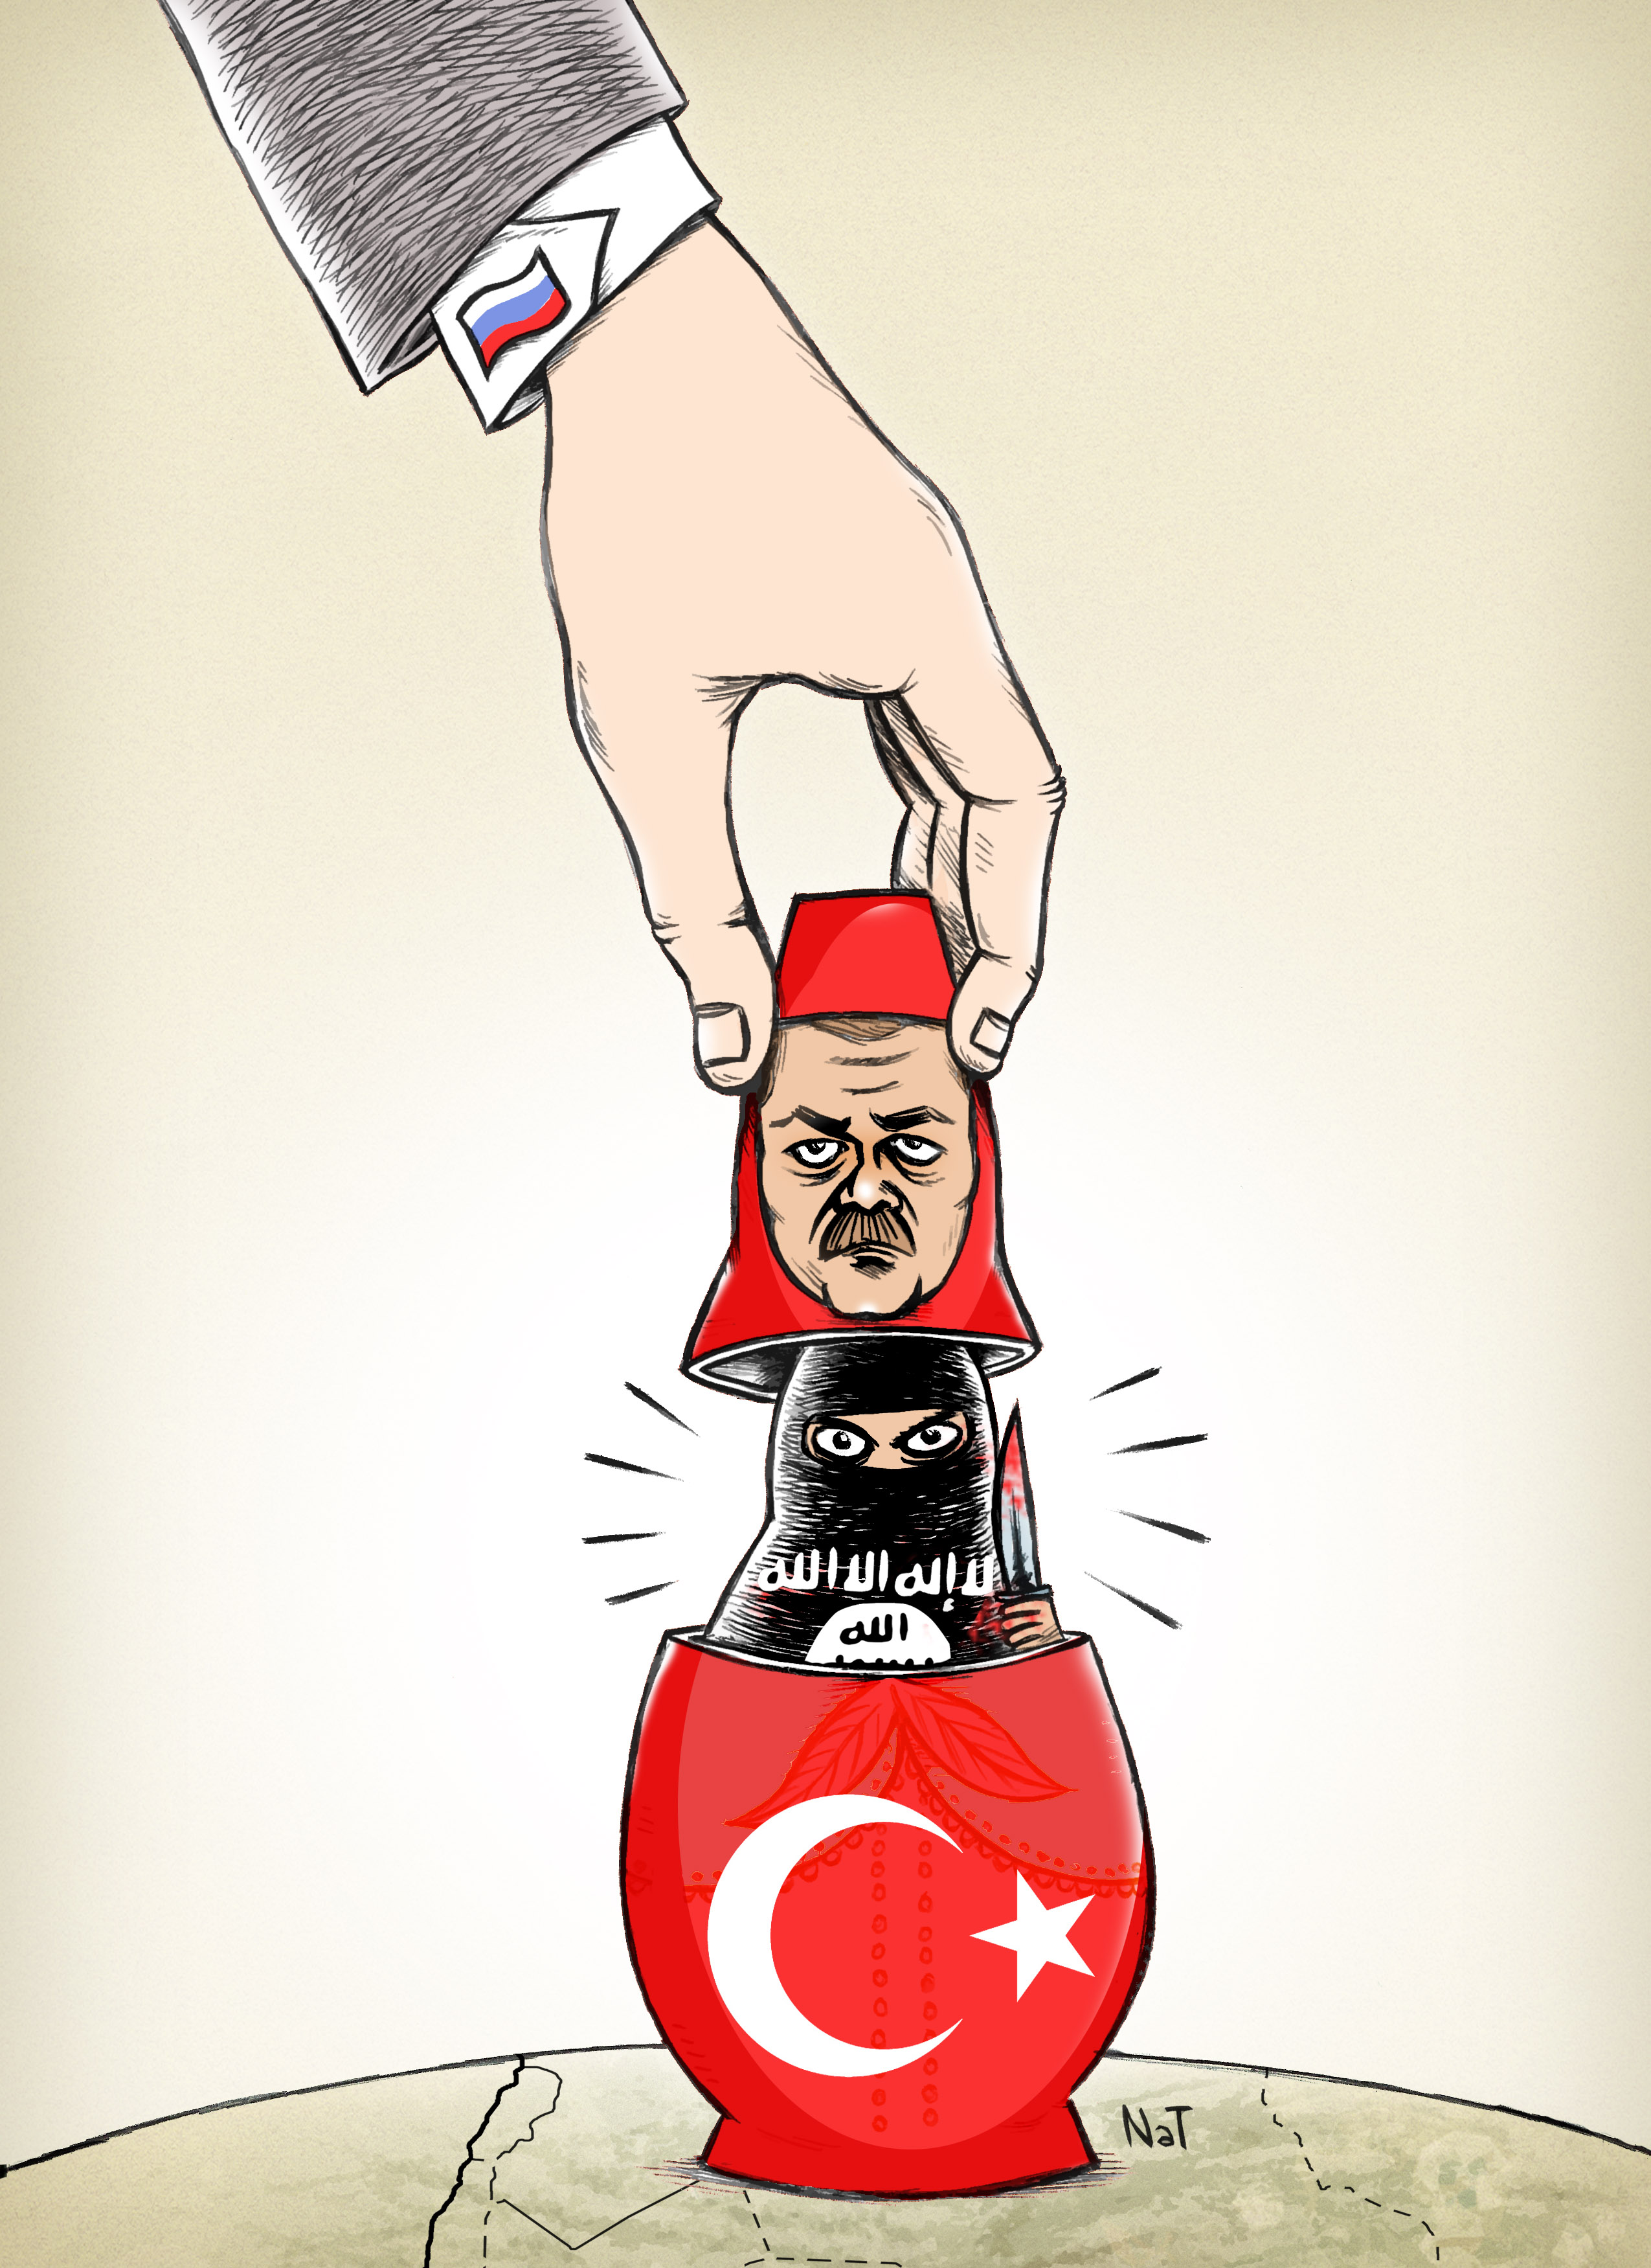 TURKISH DAESH MATRIOSHKA